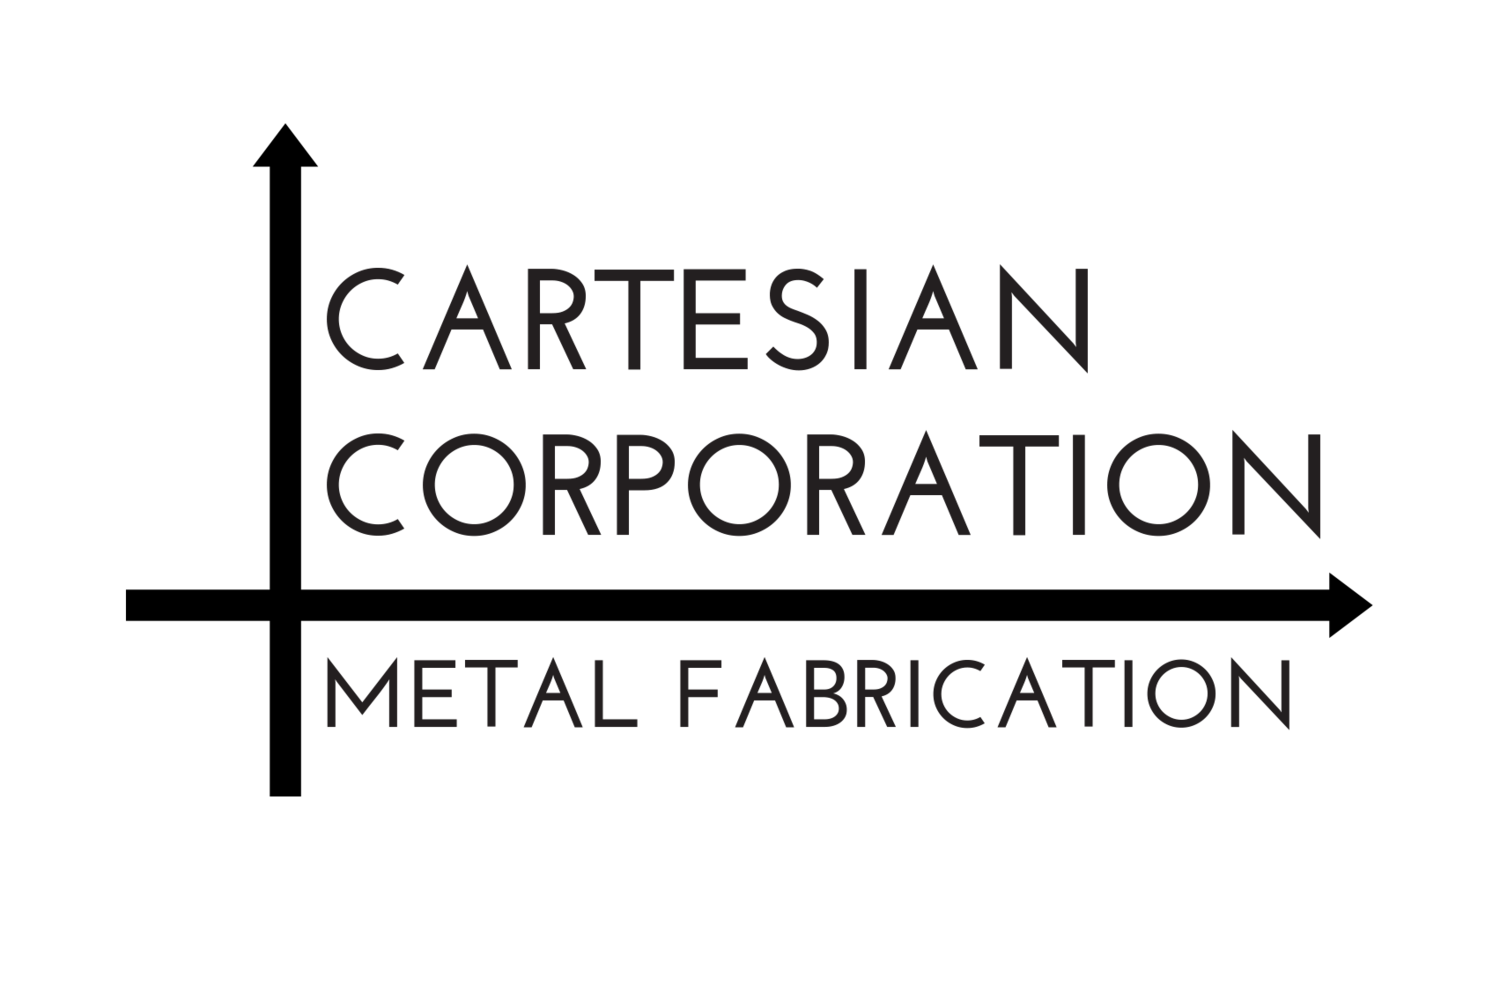 Cartesian Corporation